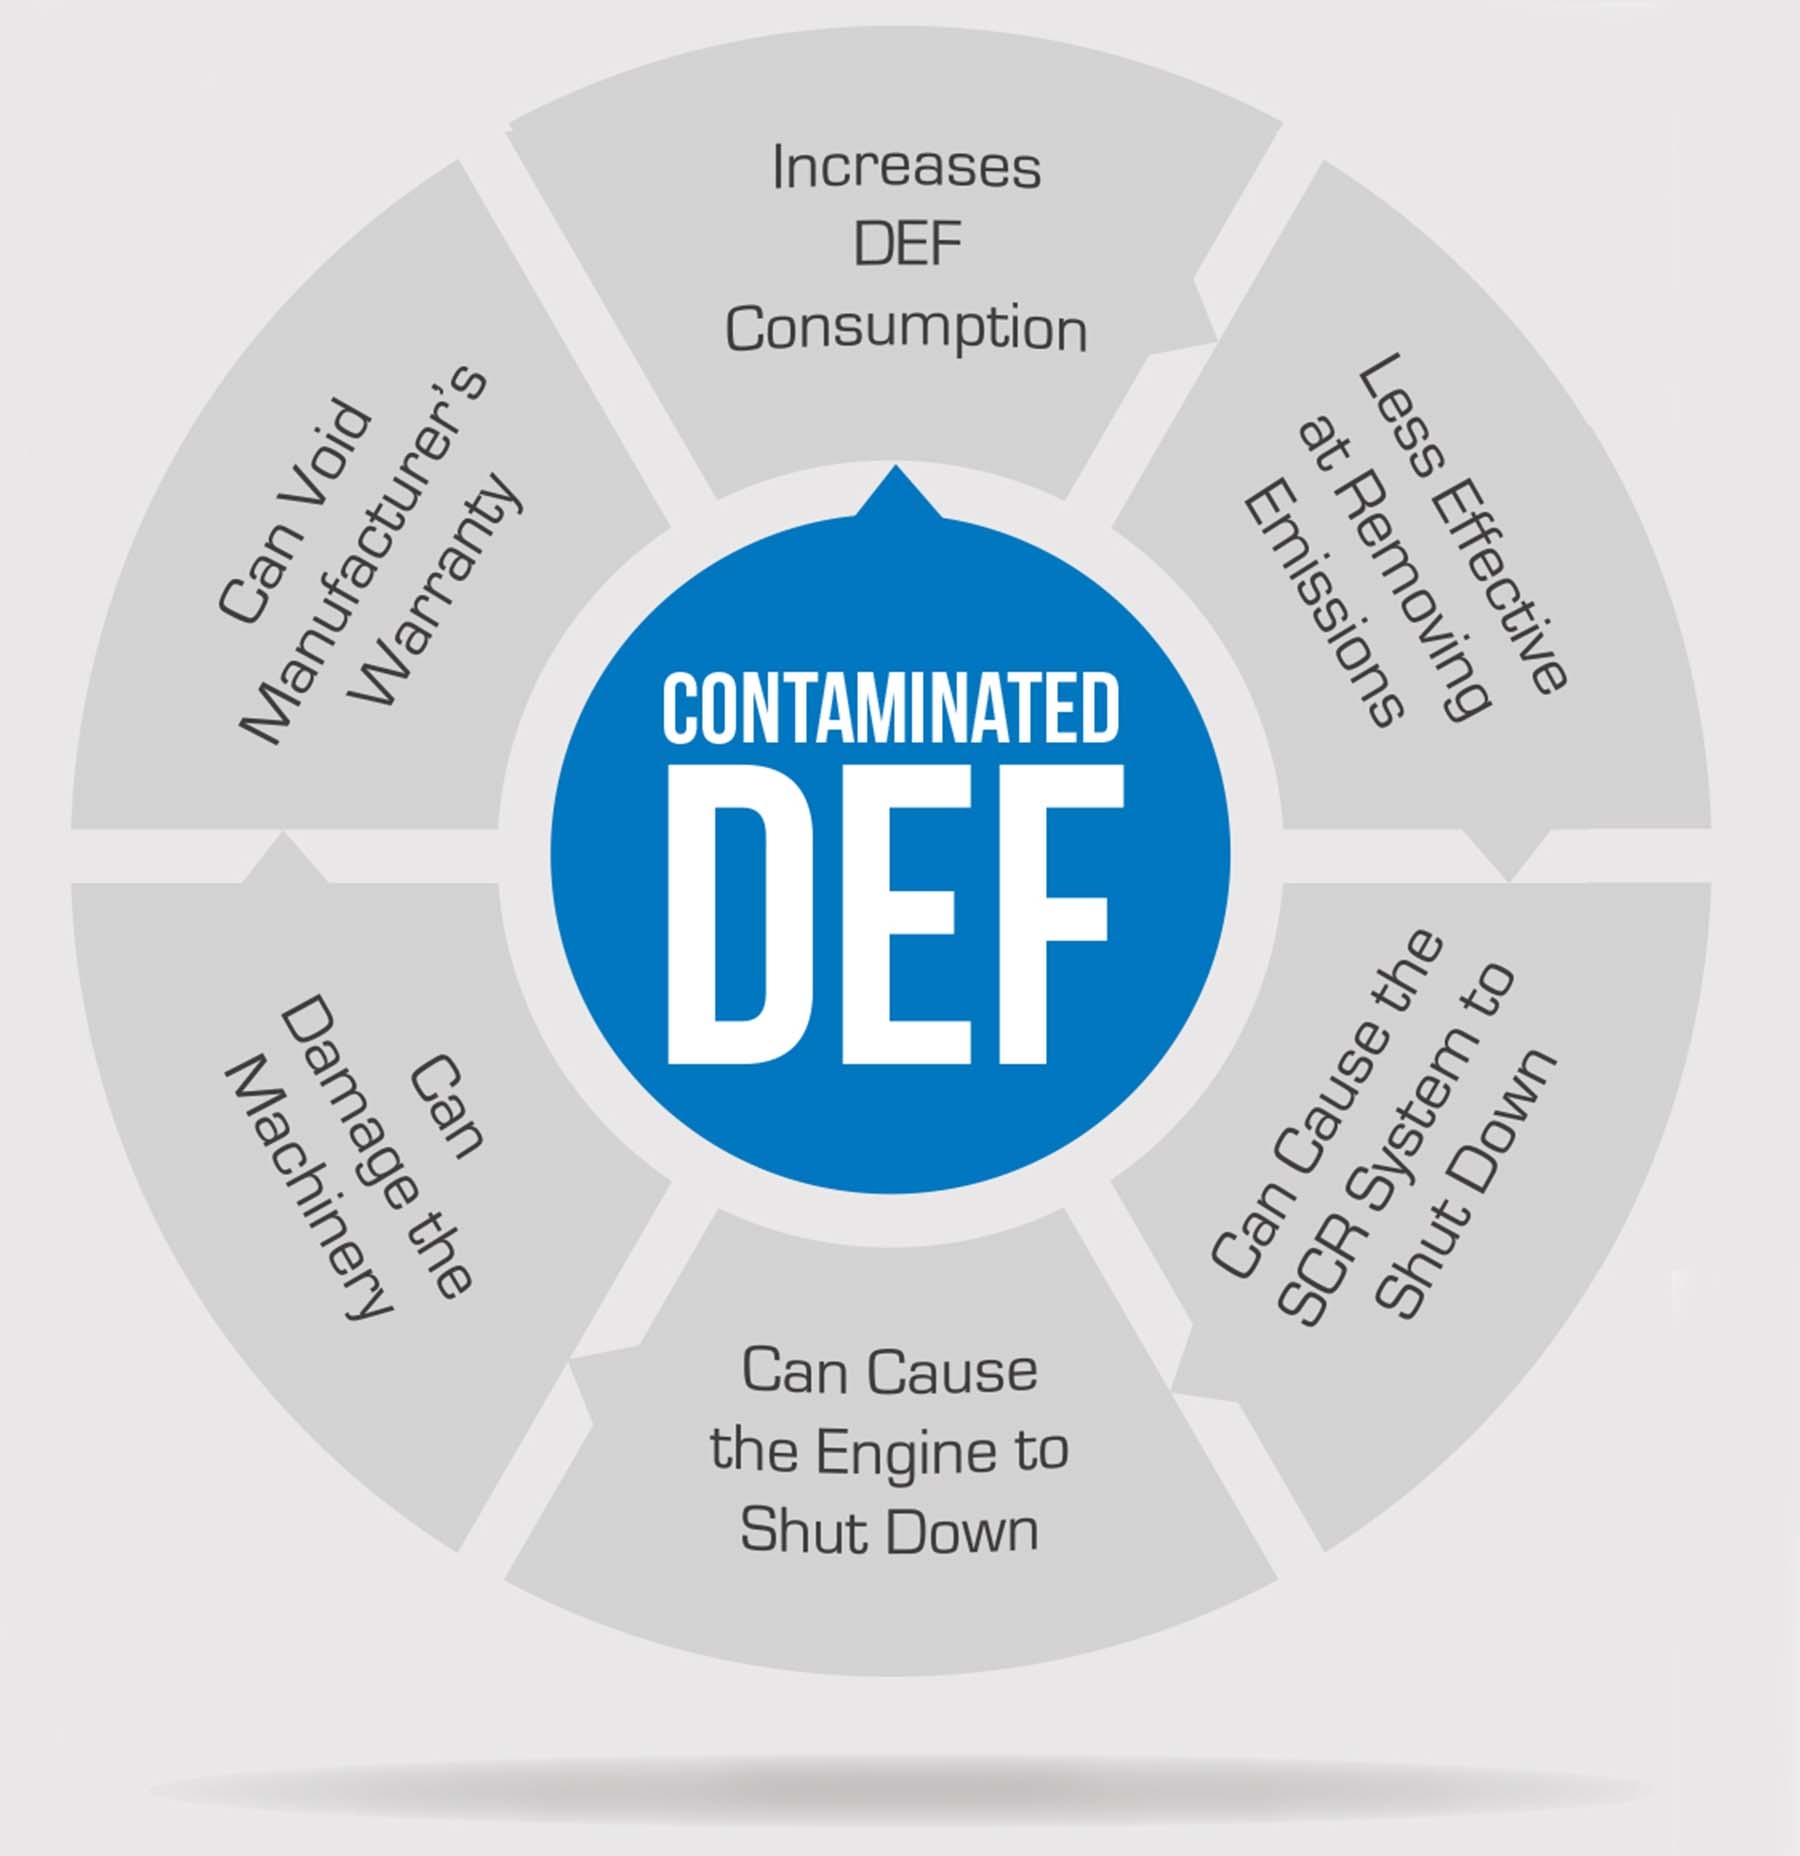 Diesel Exhaust Fluid >> How to be sure diesel exhaust fluid reaches your off-road equipment free from contamination ...